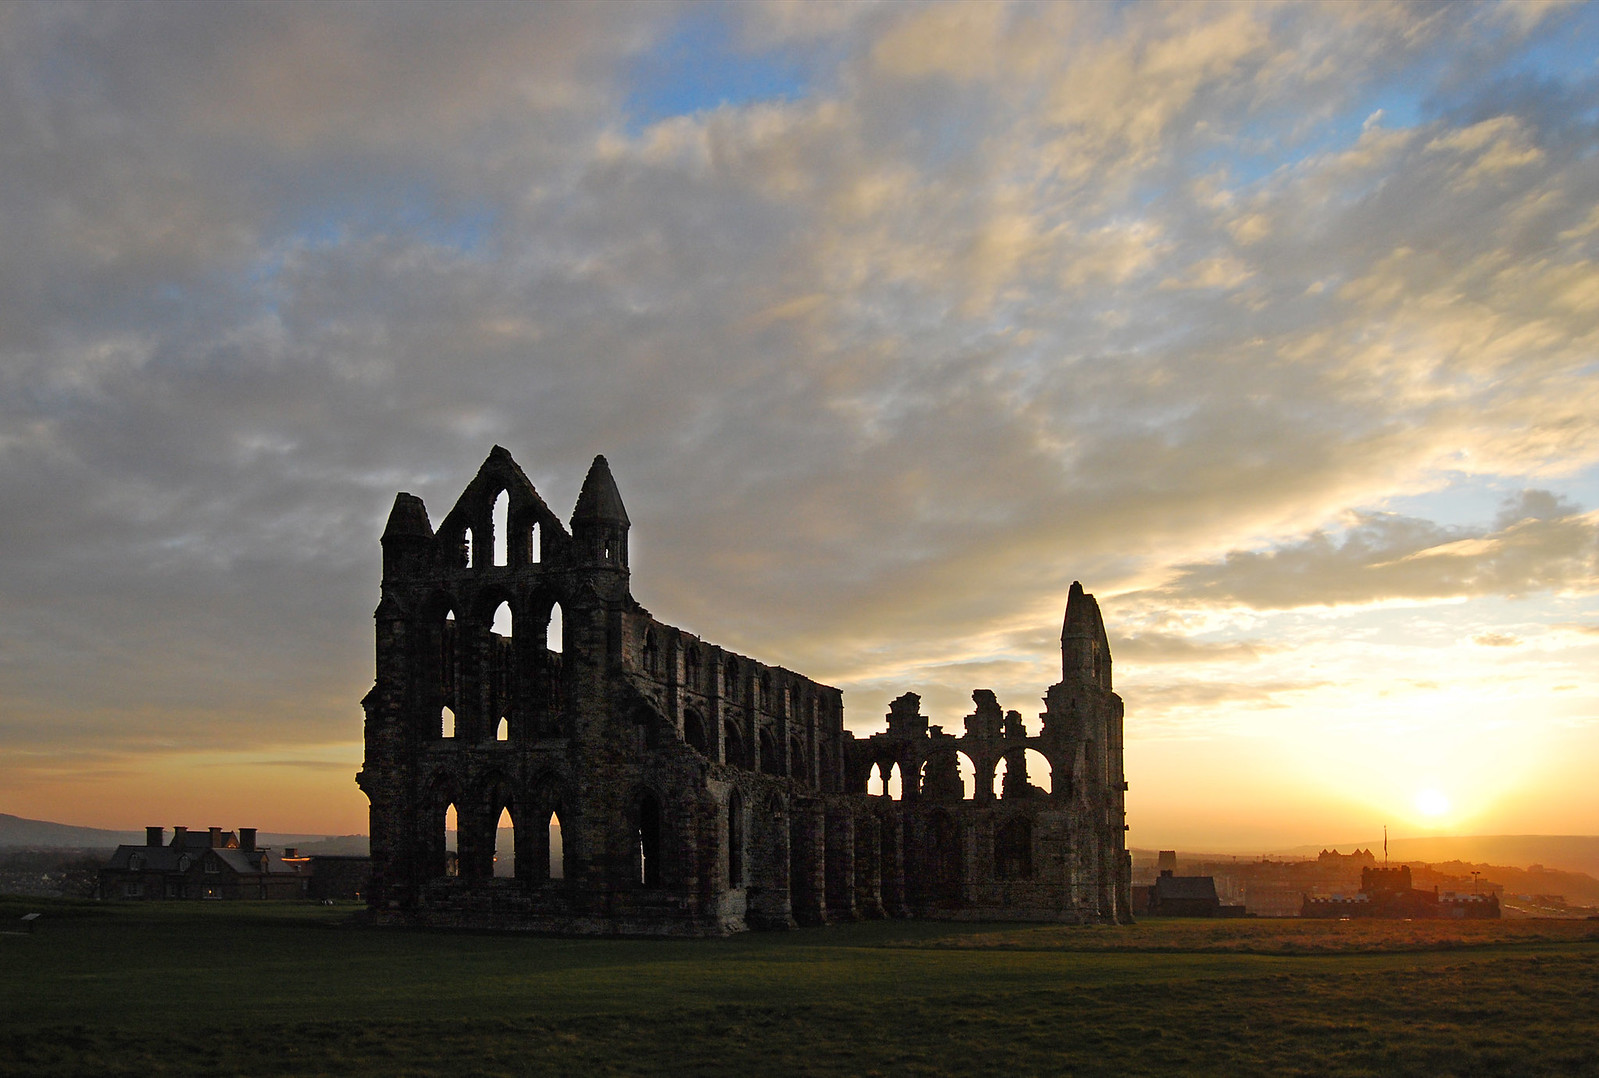 Whitby Abbey at sunset. Credit Ackers72